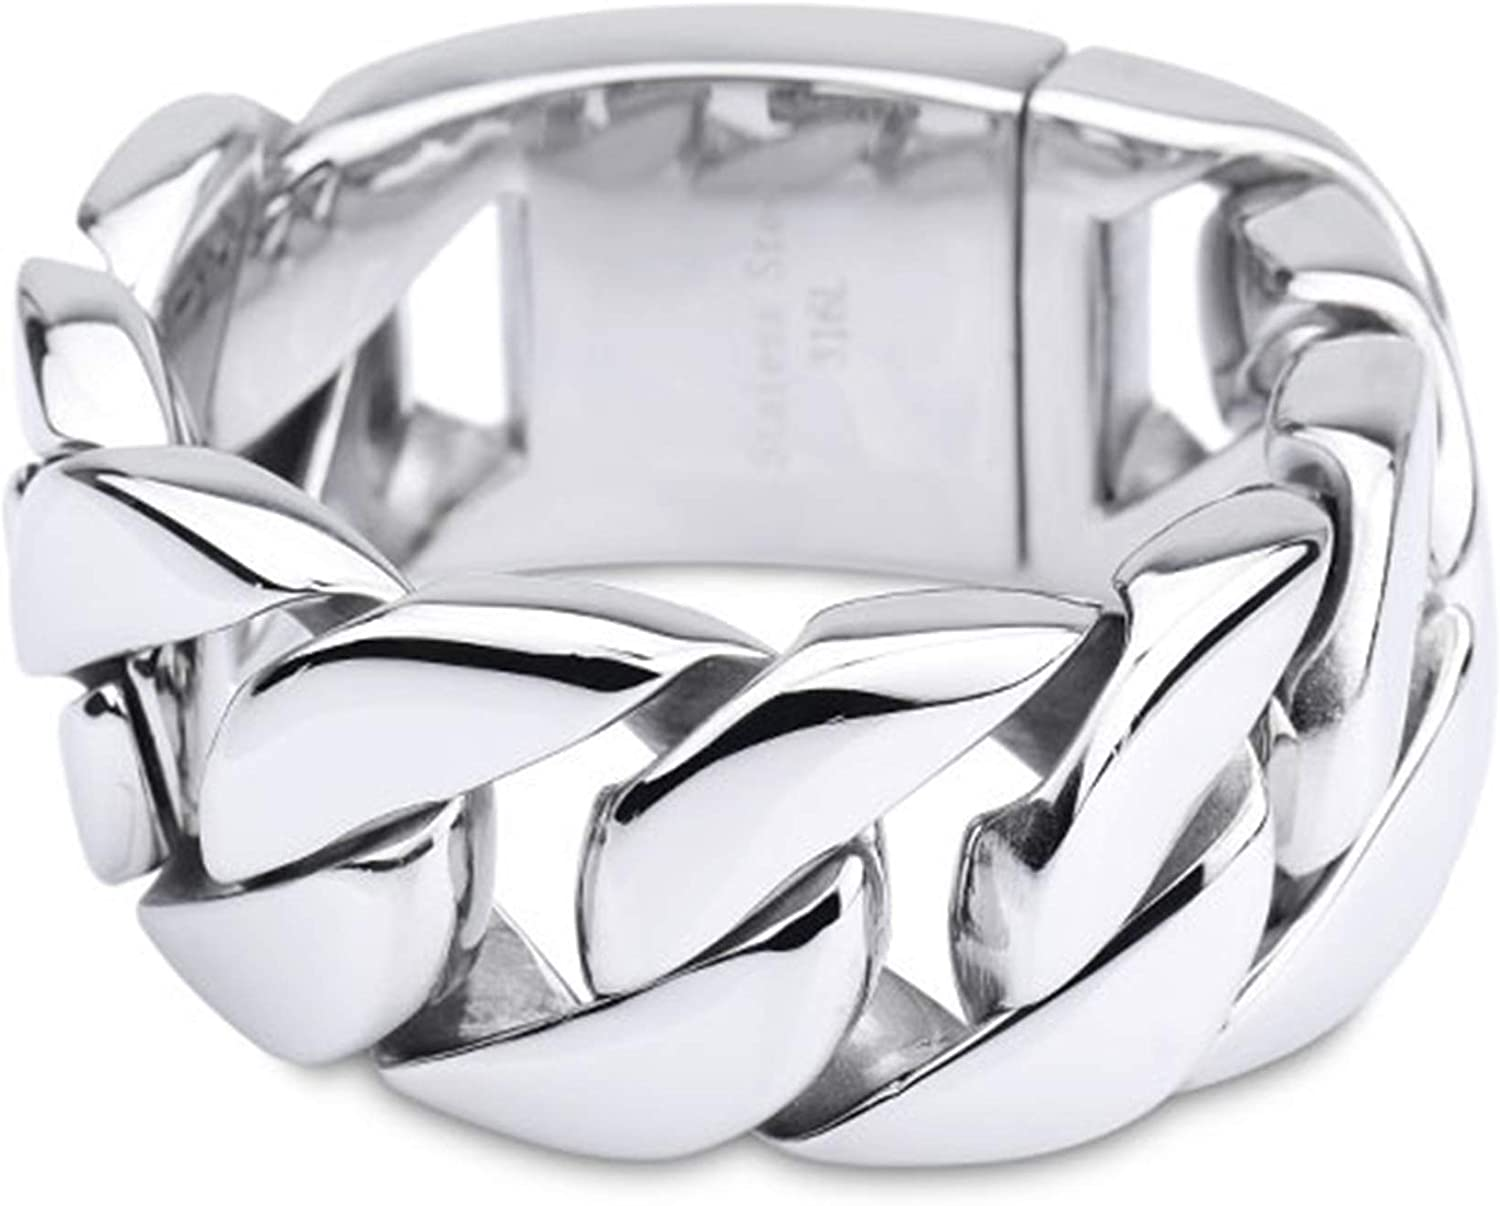 Daesar Men Bracelet Stainless Steel Limited price Directly managed store sale Wide C Silver Bracelets Curb